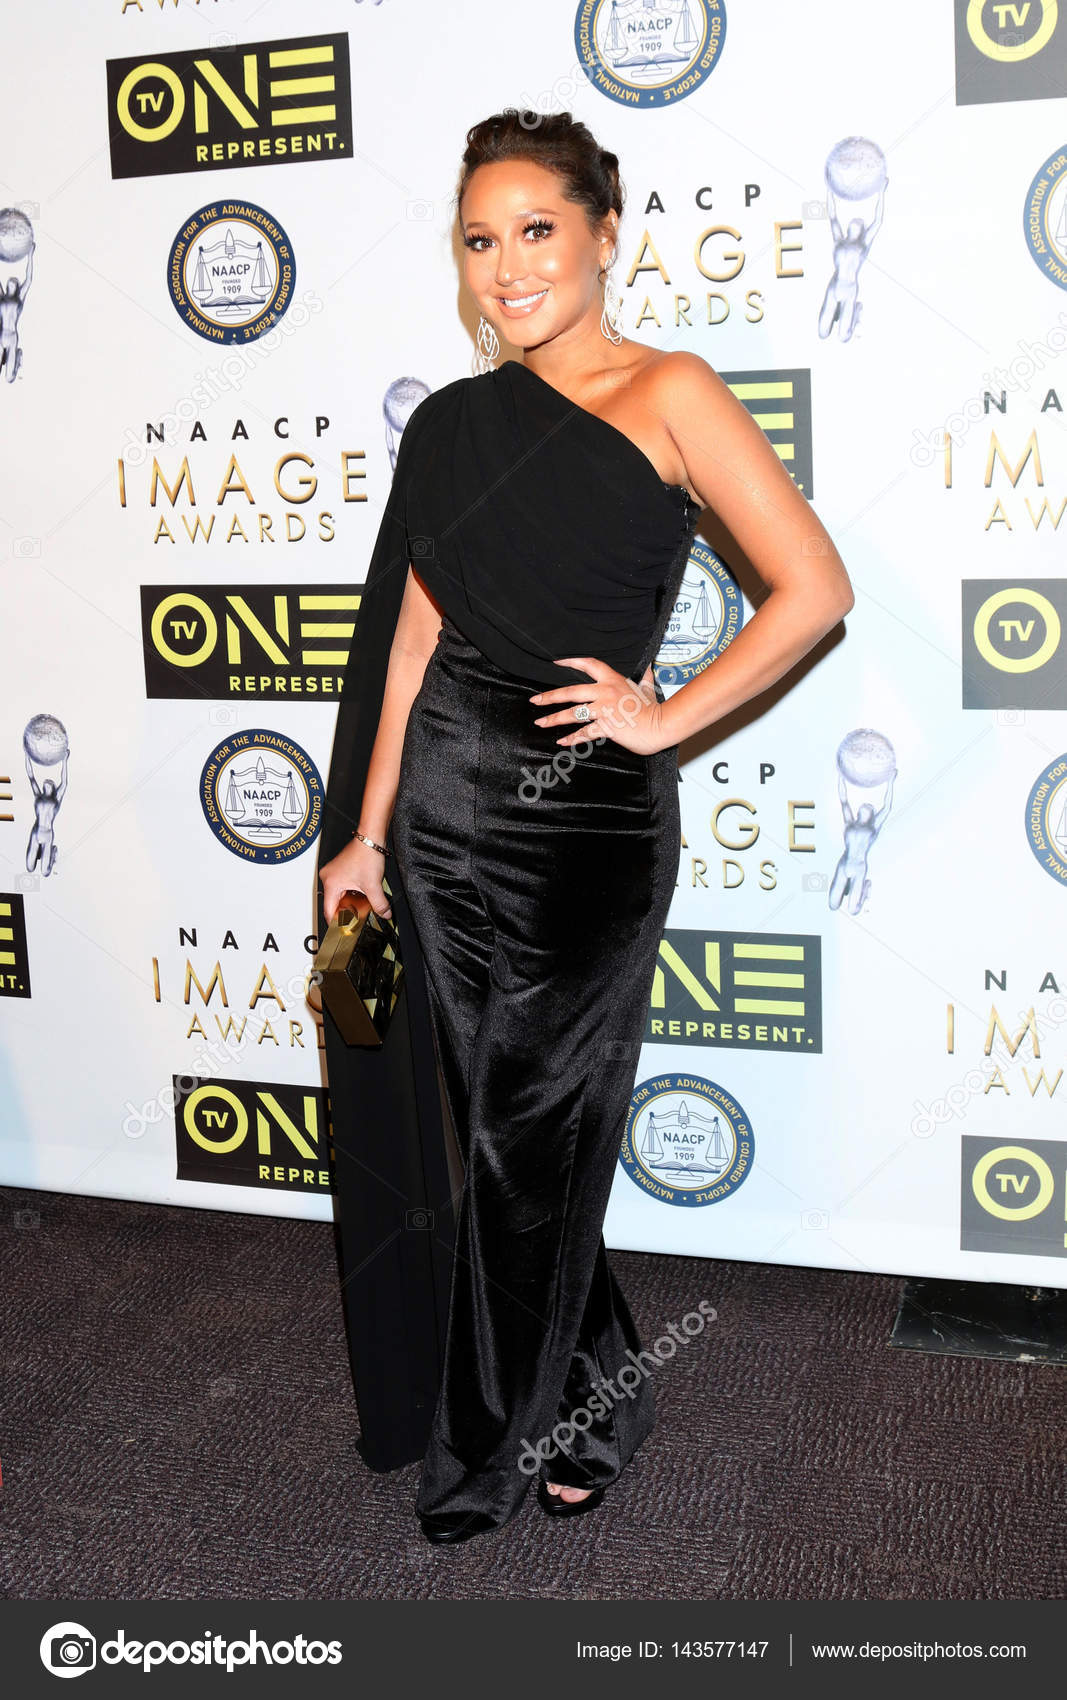 Watch Adrienne bailon imagen awards in los angeles video